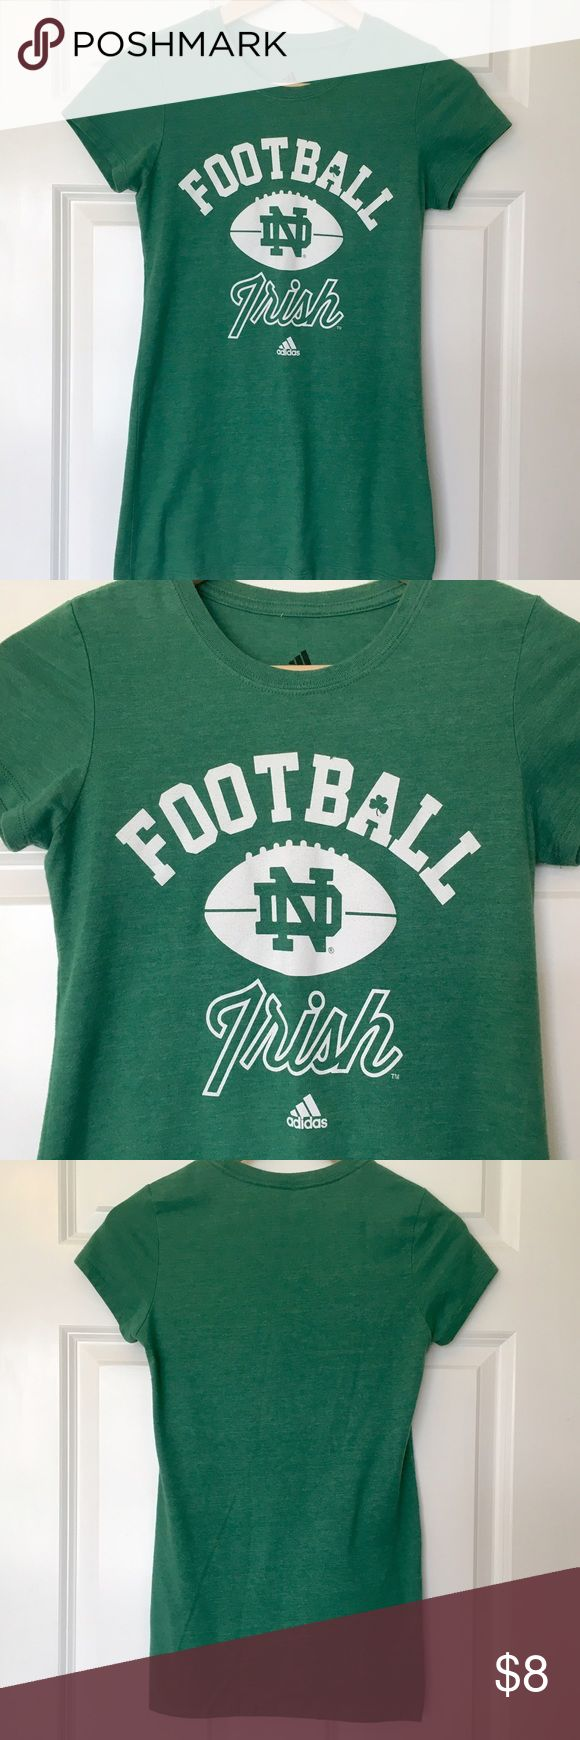 Women's Adidas Notre Dame Football T-Shirt - Sz S Women's Adidas Notre Dame Fighting Irish football t-shirt. Green with white logo and writing. Only worn once. Excellent condition. Size small. Adidas Tops Tees - Short Sleeve